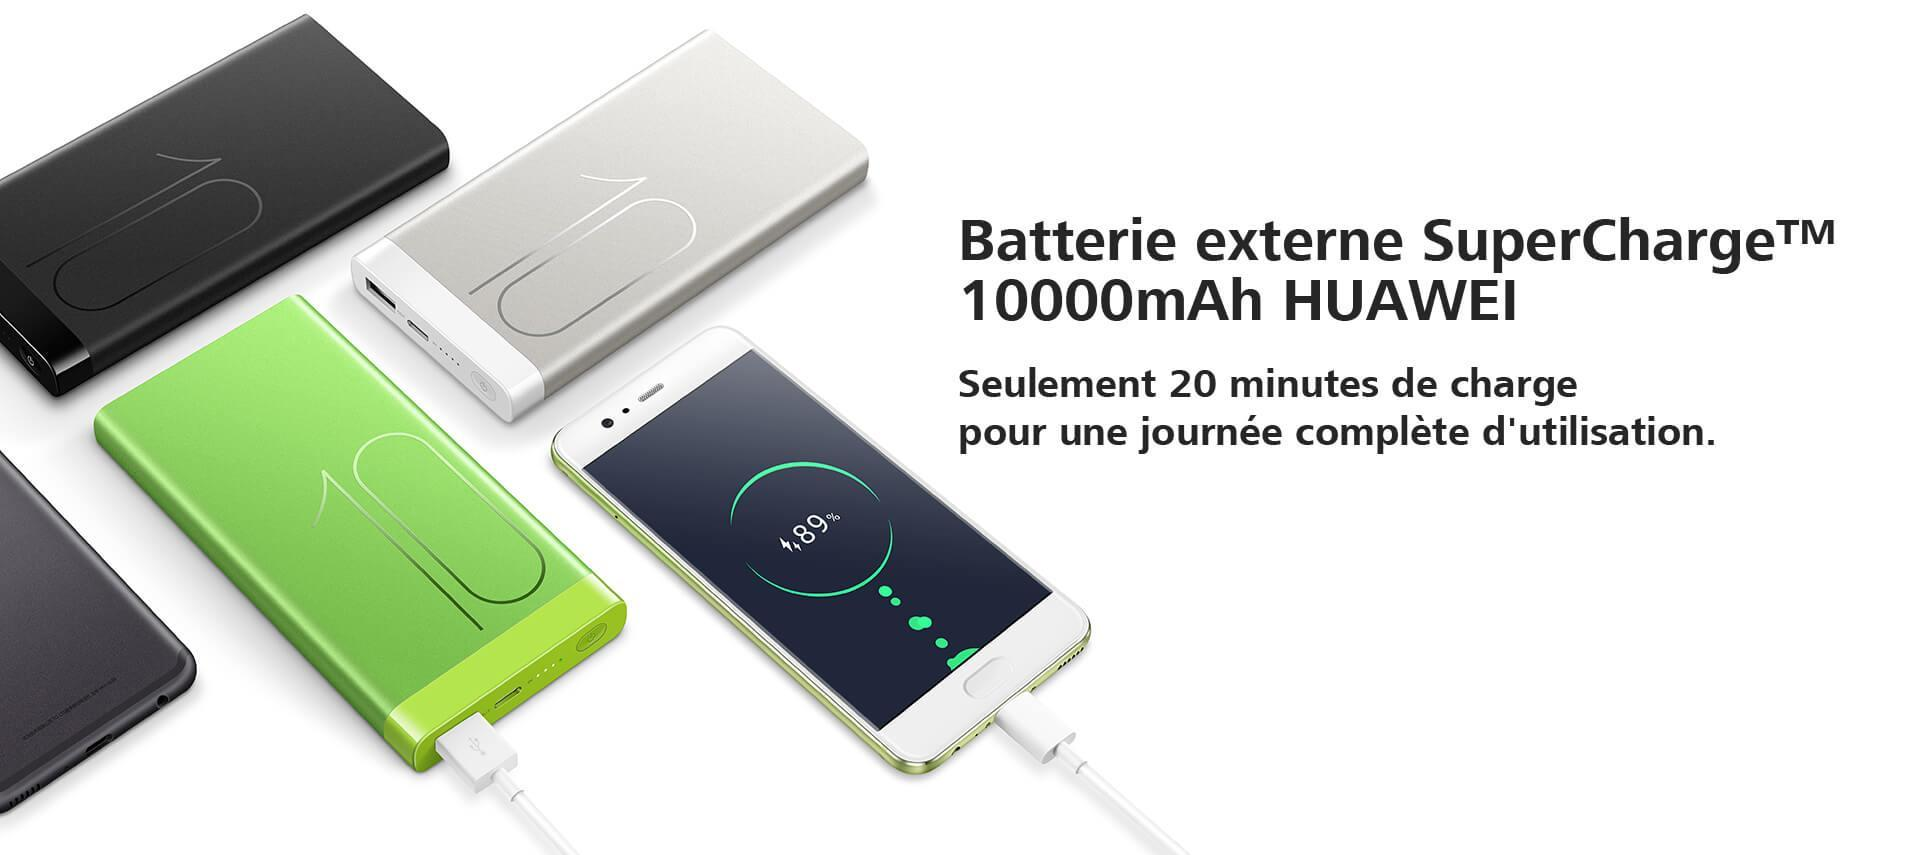 Batterie externe SuperCharge™ 10000mAh HUAWEI